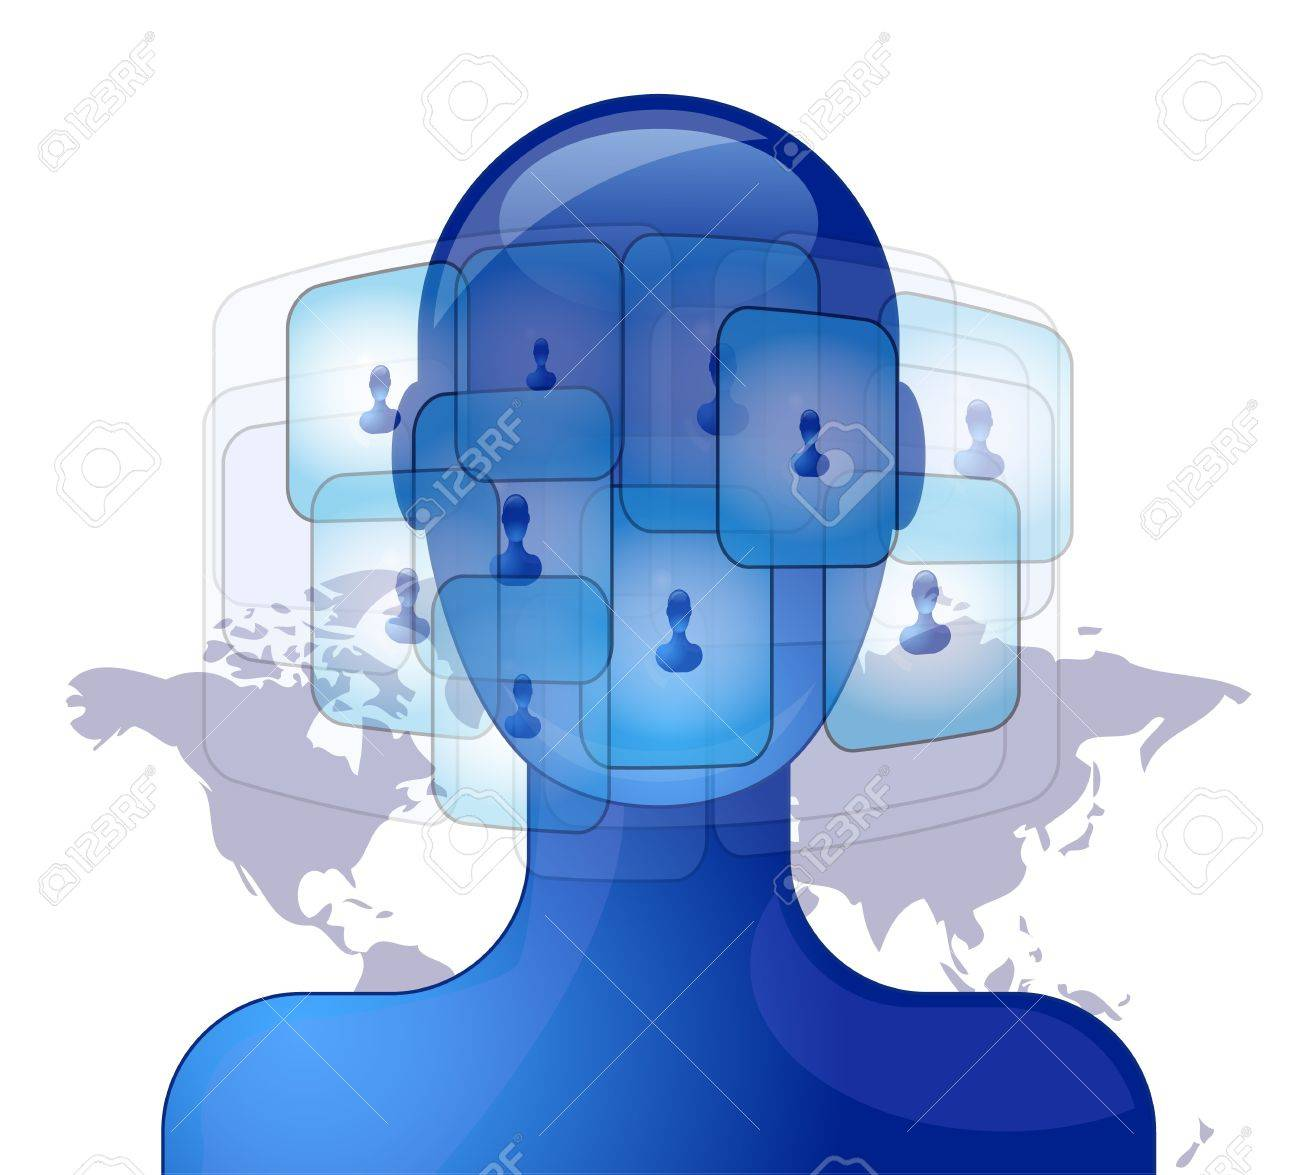 Blue person with international friends on social media Stock Vector - 12710945